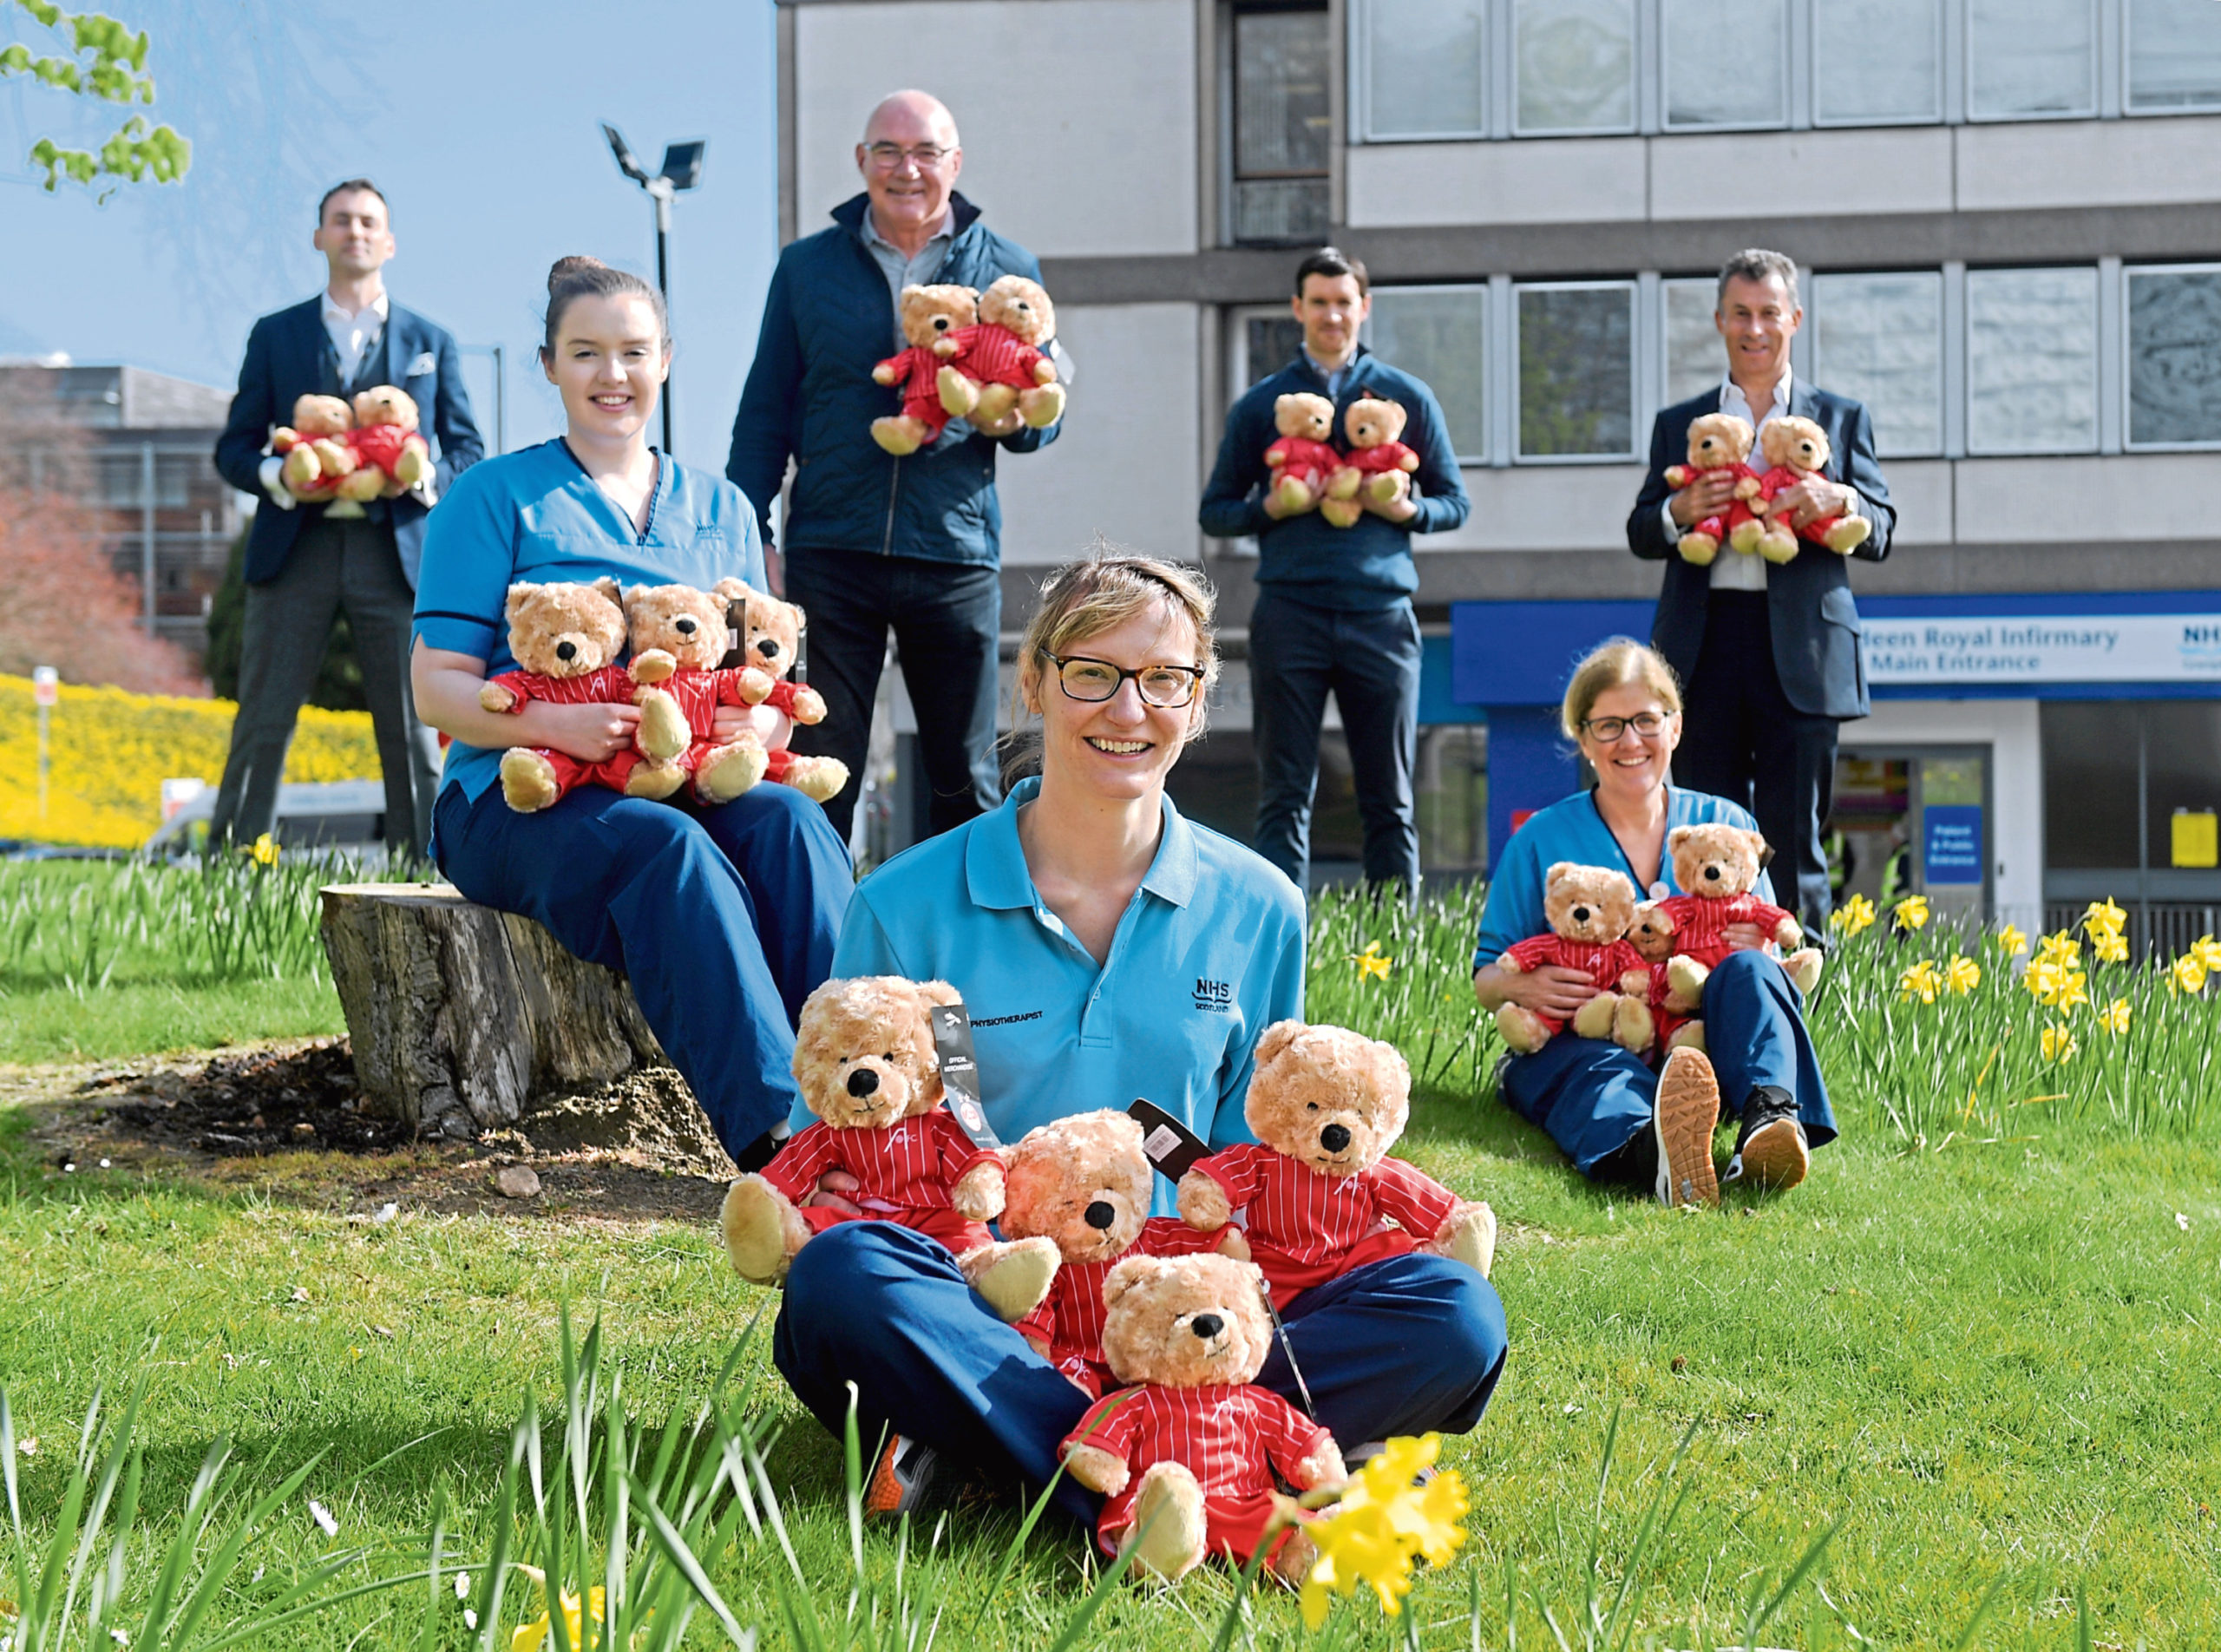 Gary Walker Wealth Management have purchased a heap of Miller Bears from the AFC Community Trust to donate to frontline NHS staff